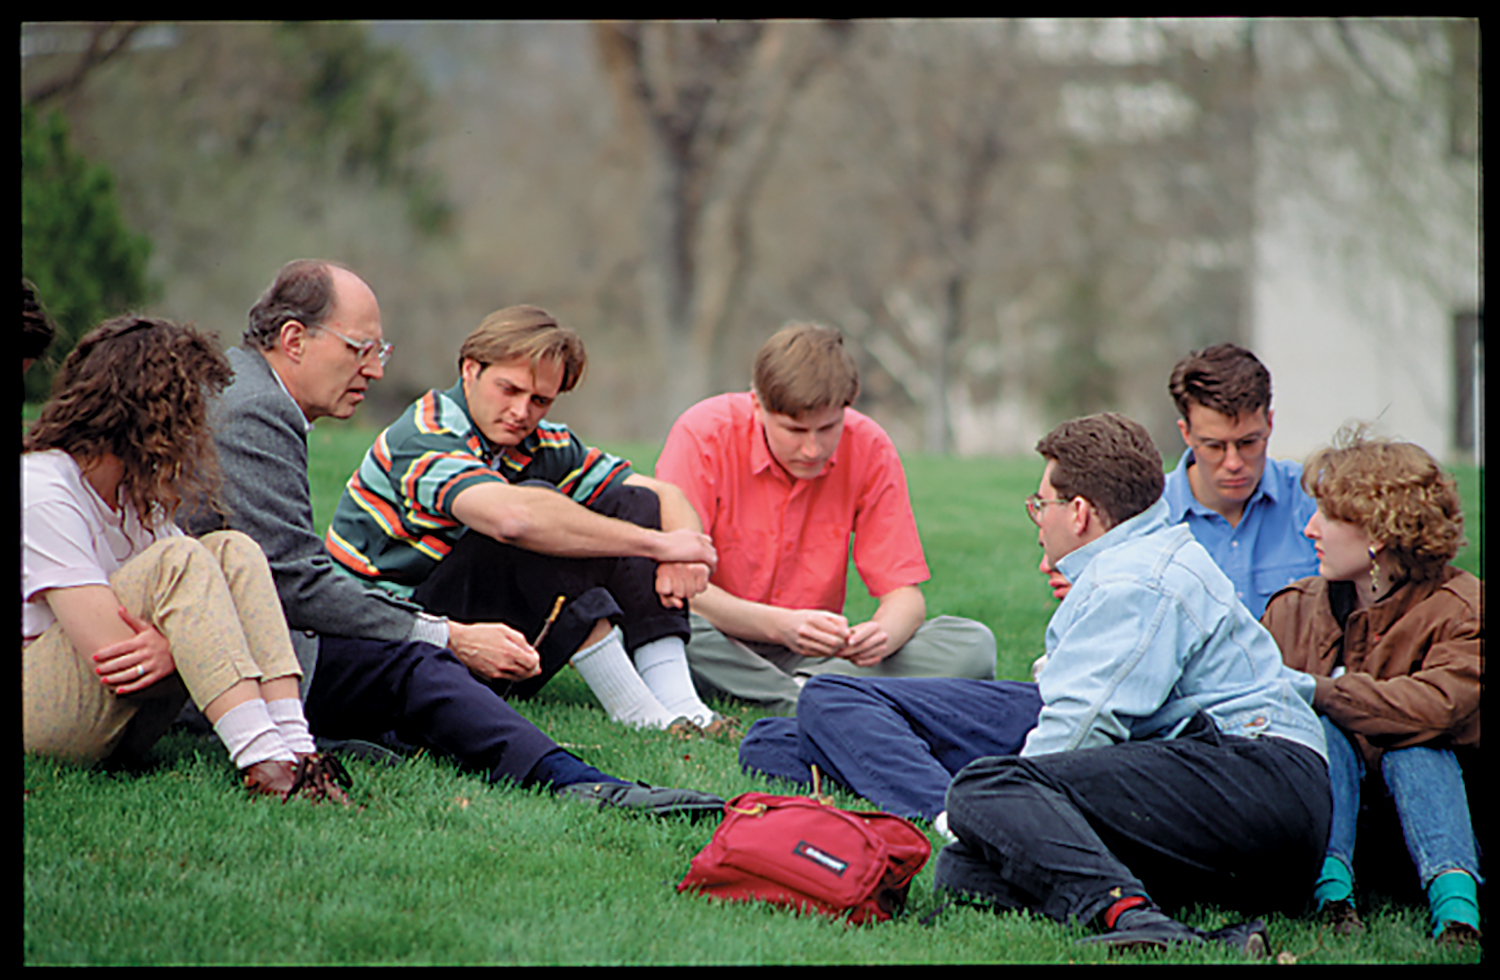 A few students gathered around on the grass surrounding their teacher as he talks to them.